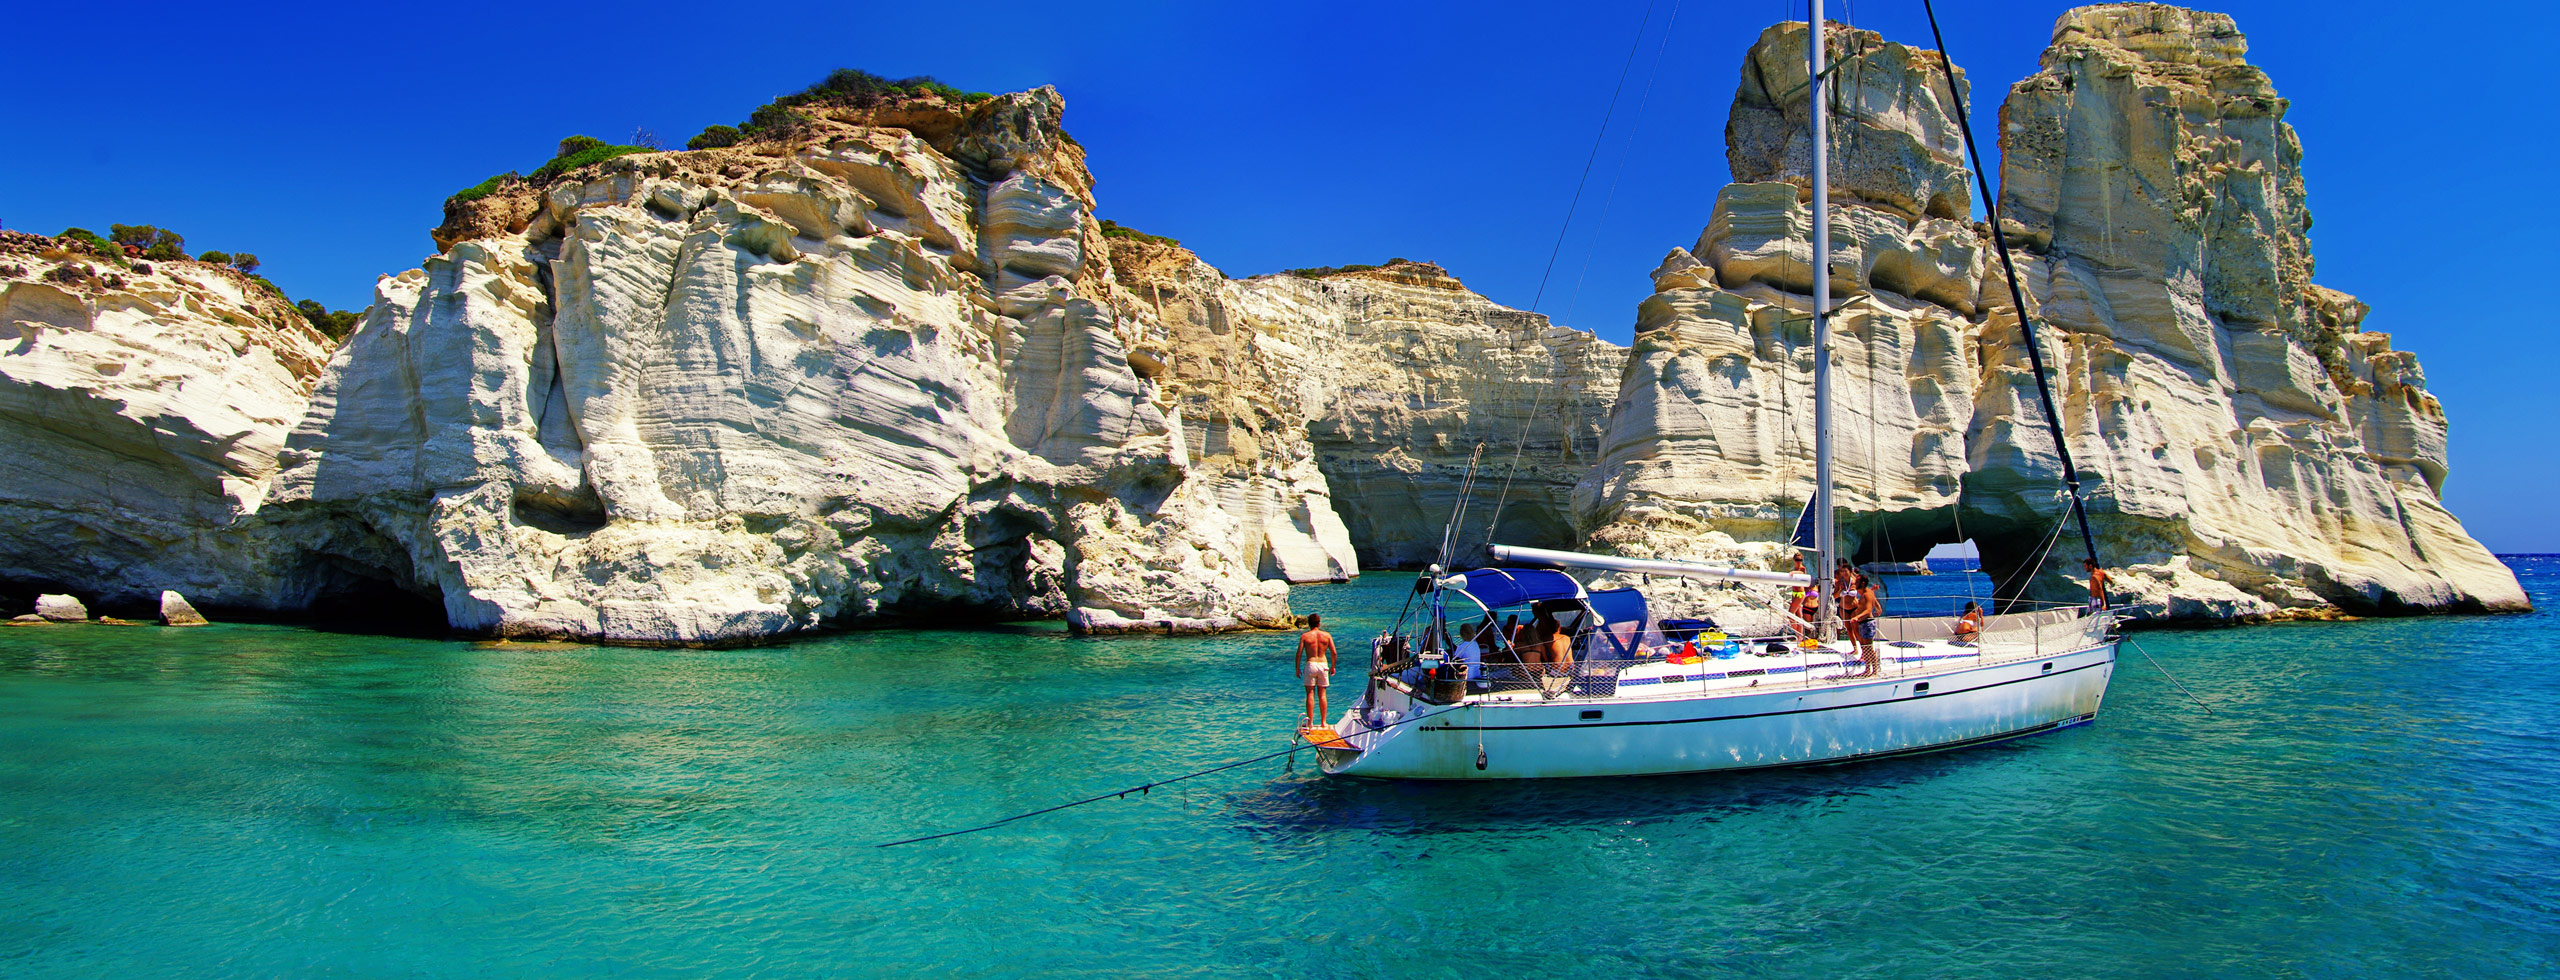 Greek Islands Sailing Vacation Yacht Charter Greece Sailing Cruises - Greek island cruises